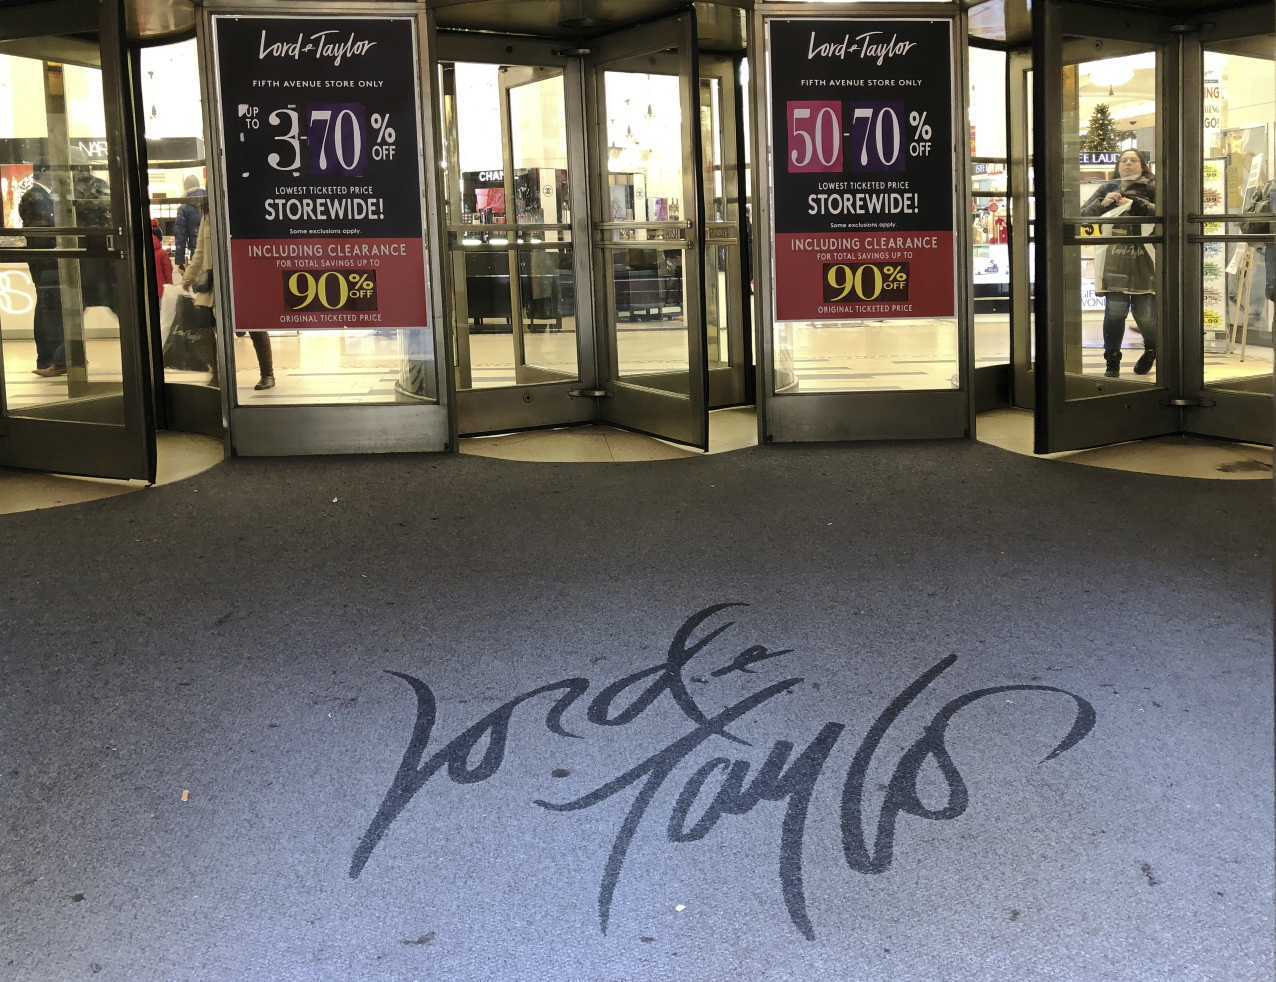 Bankrupt department store chain Lord and Taylor, in operation for 194 years, will close all stores and liquidate, a victim of Covid-19.